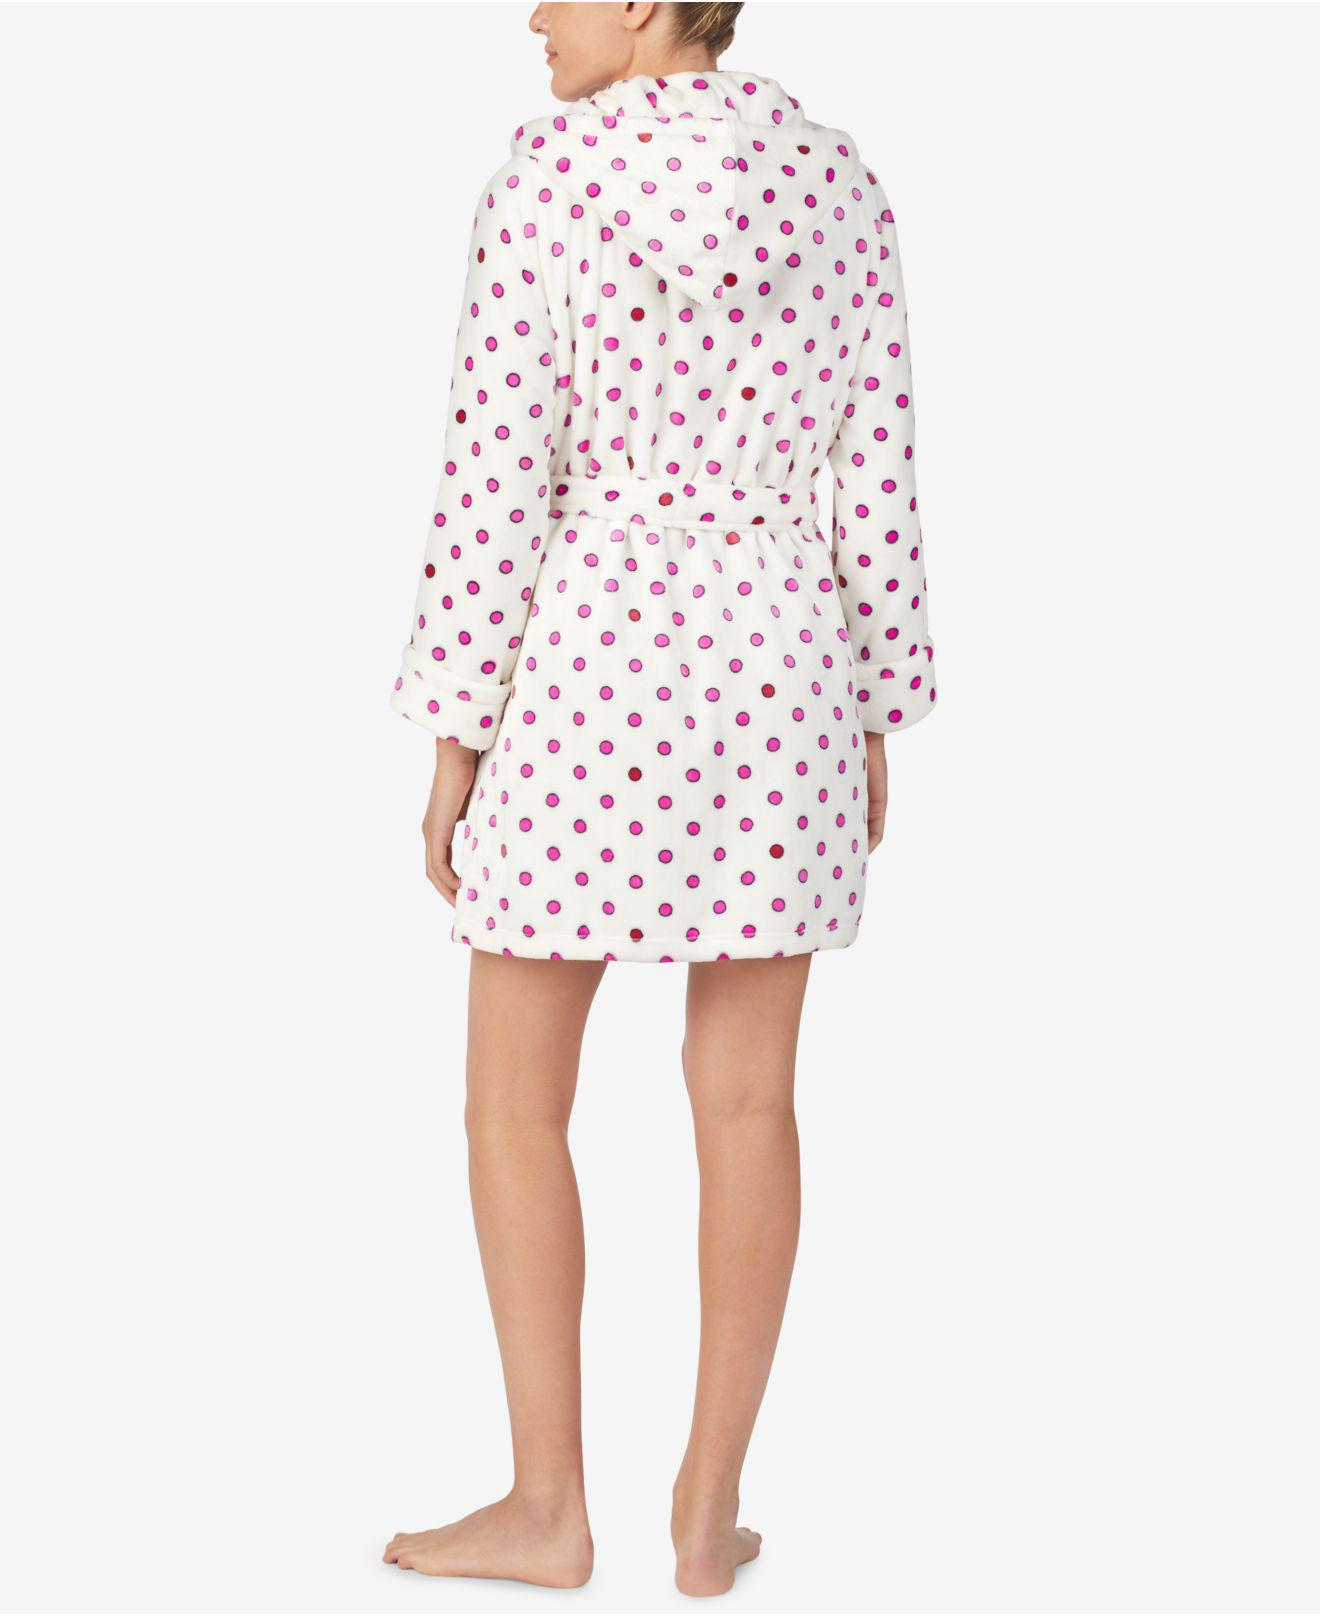 bd6ae3a0ef Lyst - Betsey Johnson Printed Plush Short Robe in White - Save 7%